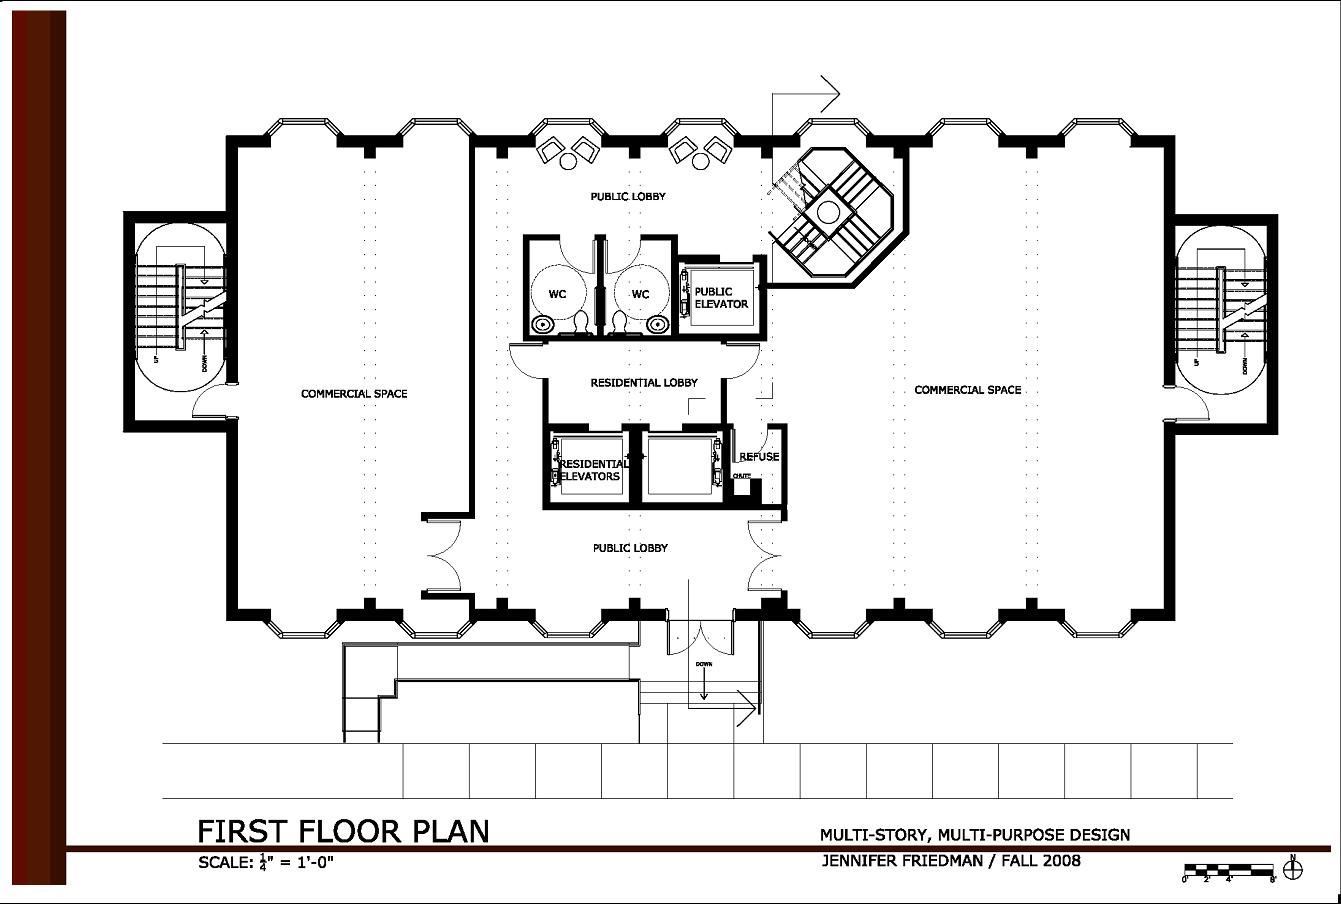 2 storey commercial building floor plan for Multiplex floor plans